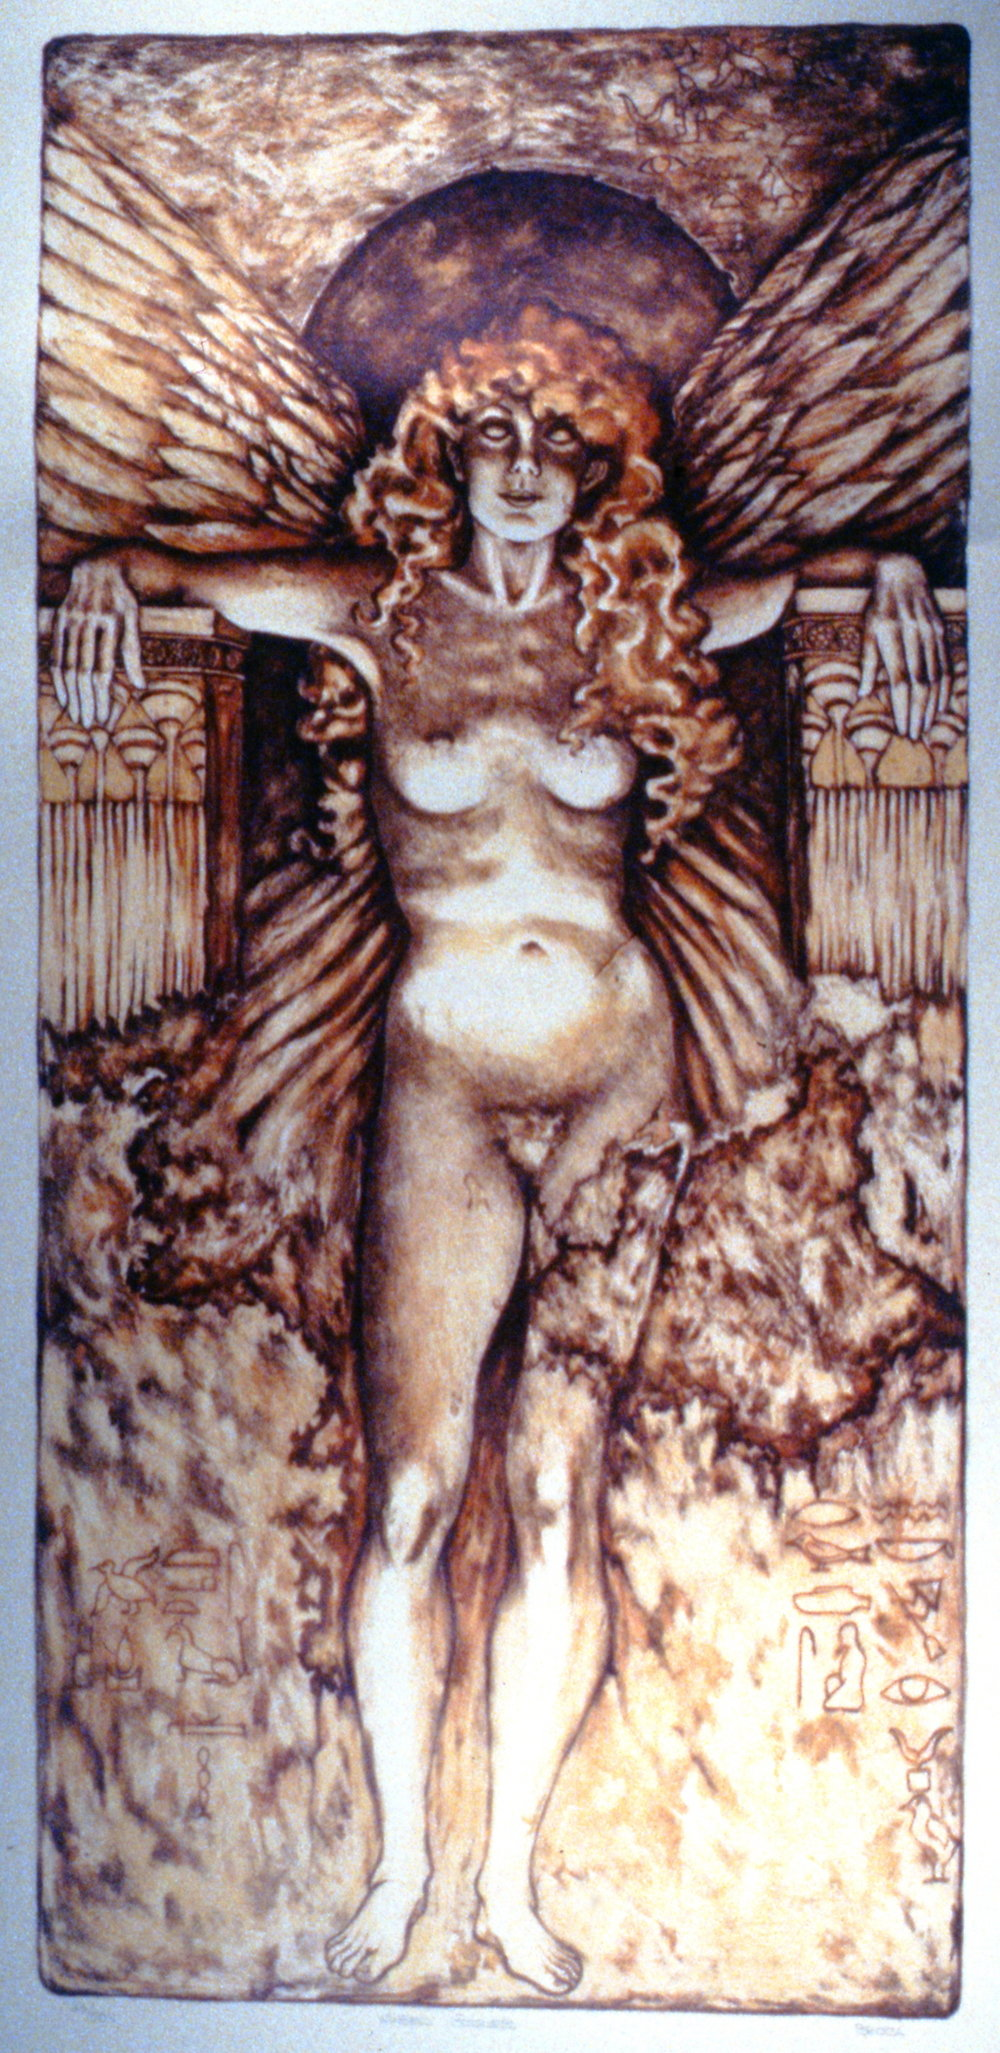 Guardian Angel , Lilian Broca, Lithograph, n.d. 41 x 86 cm, 1997.02.01